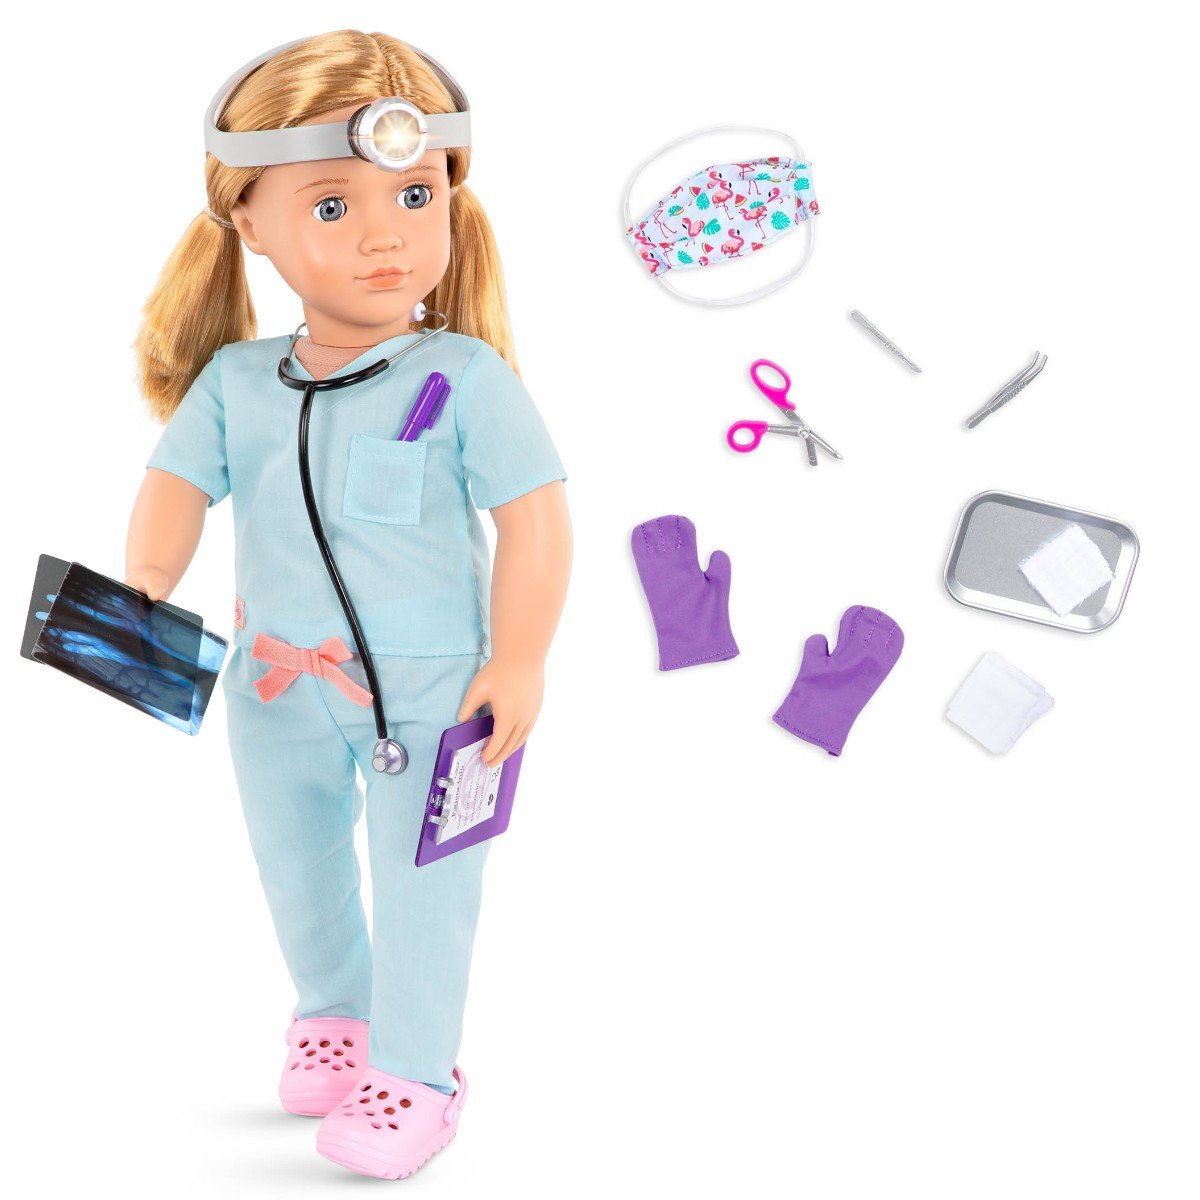 Our Generation - Tonia Surgeon doll (731319)